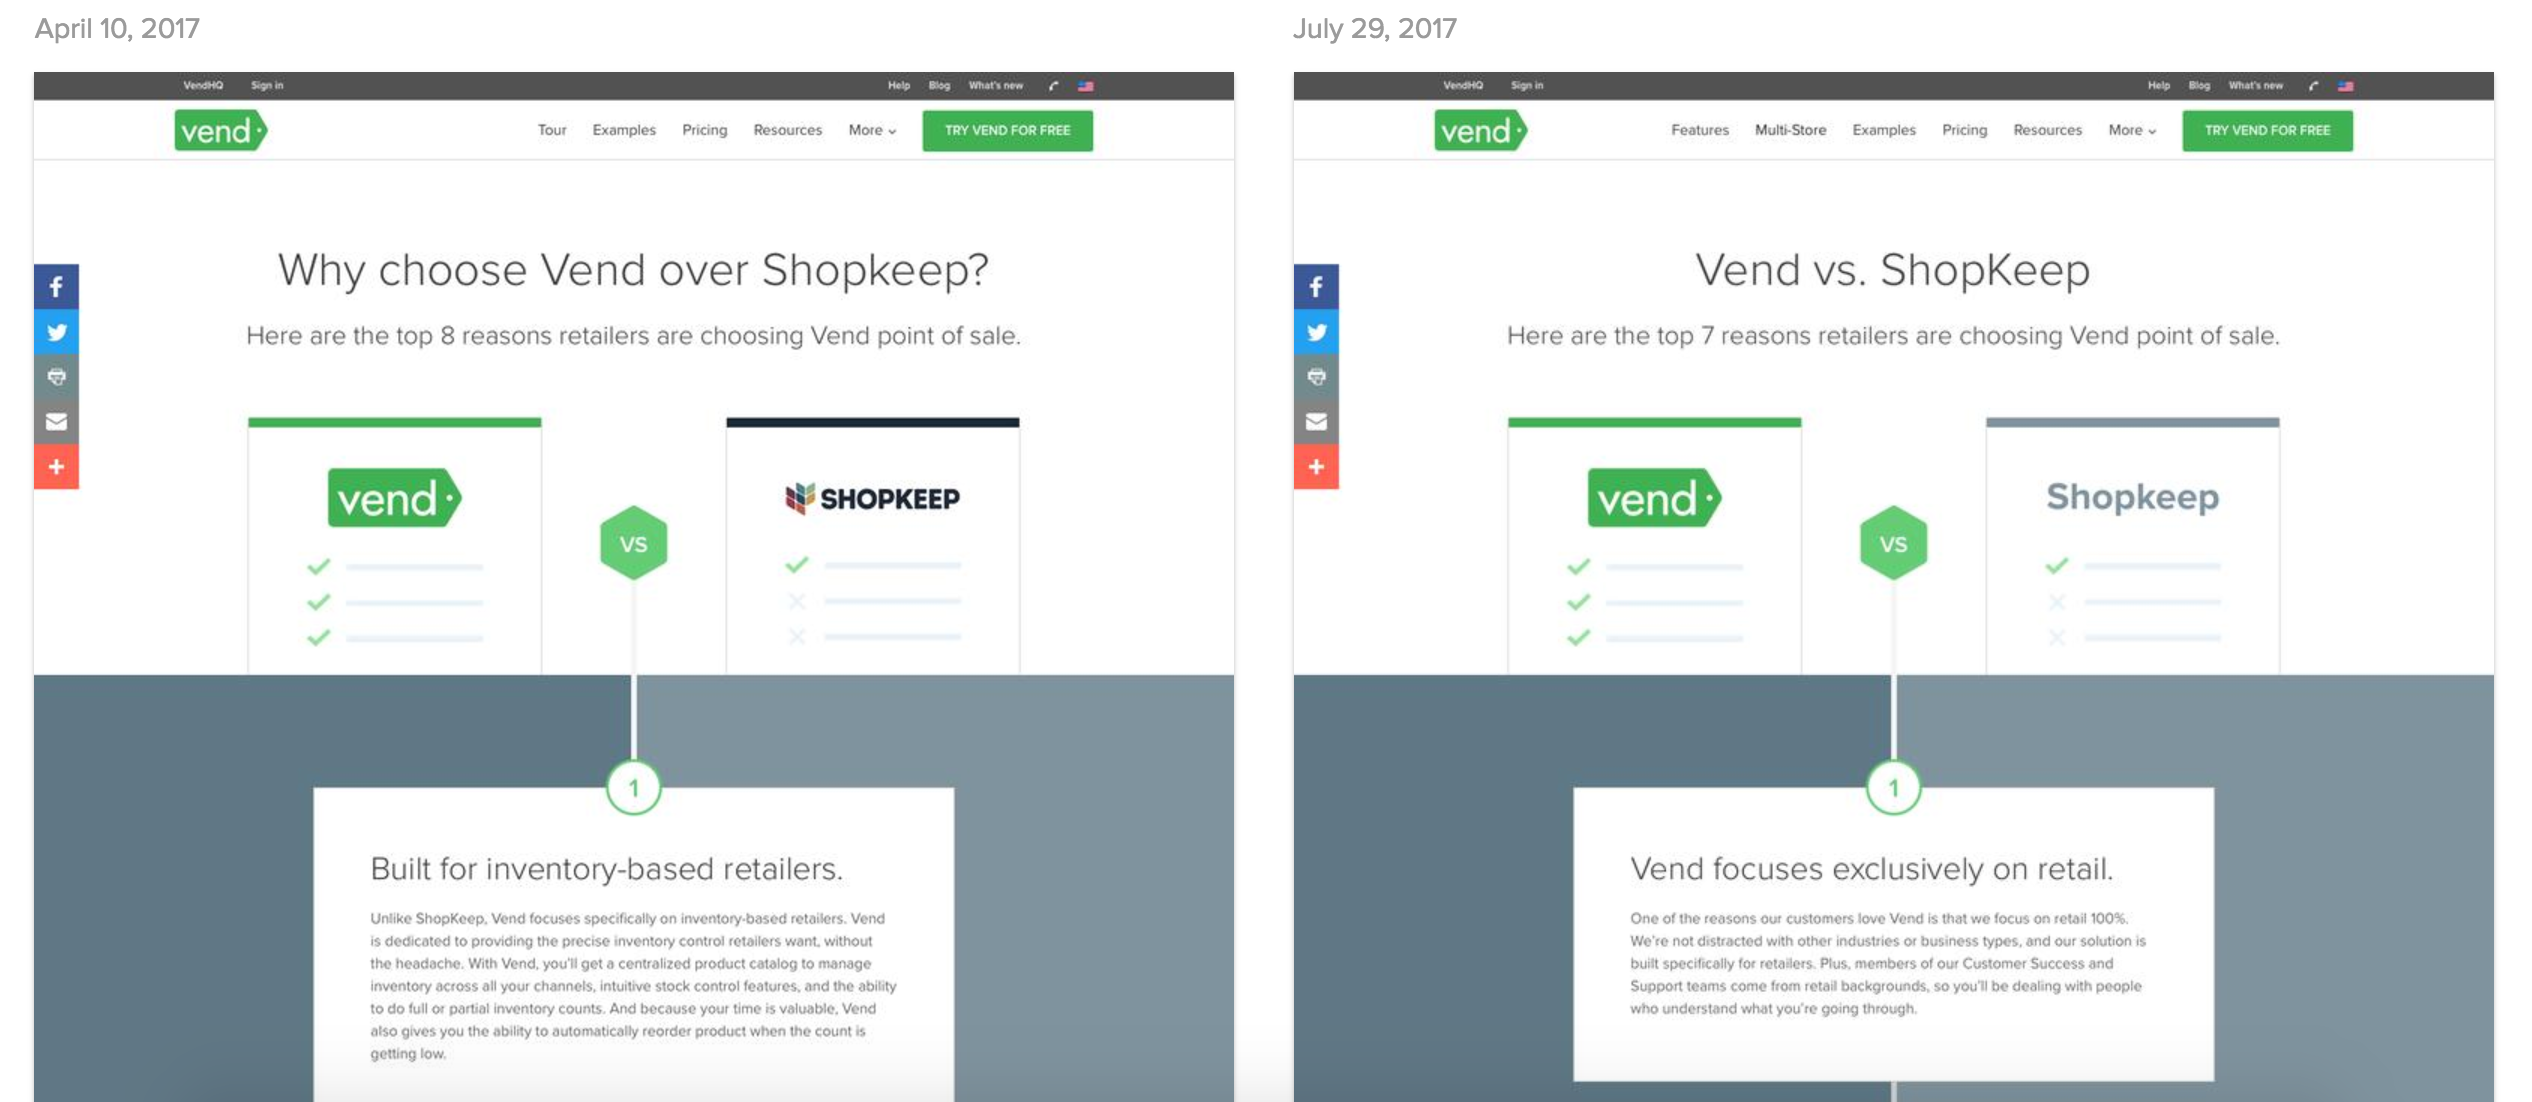 Vend-vs-Shopkeep.png